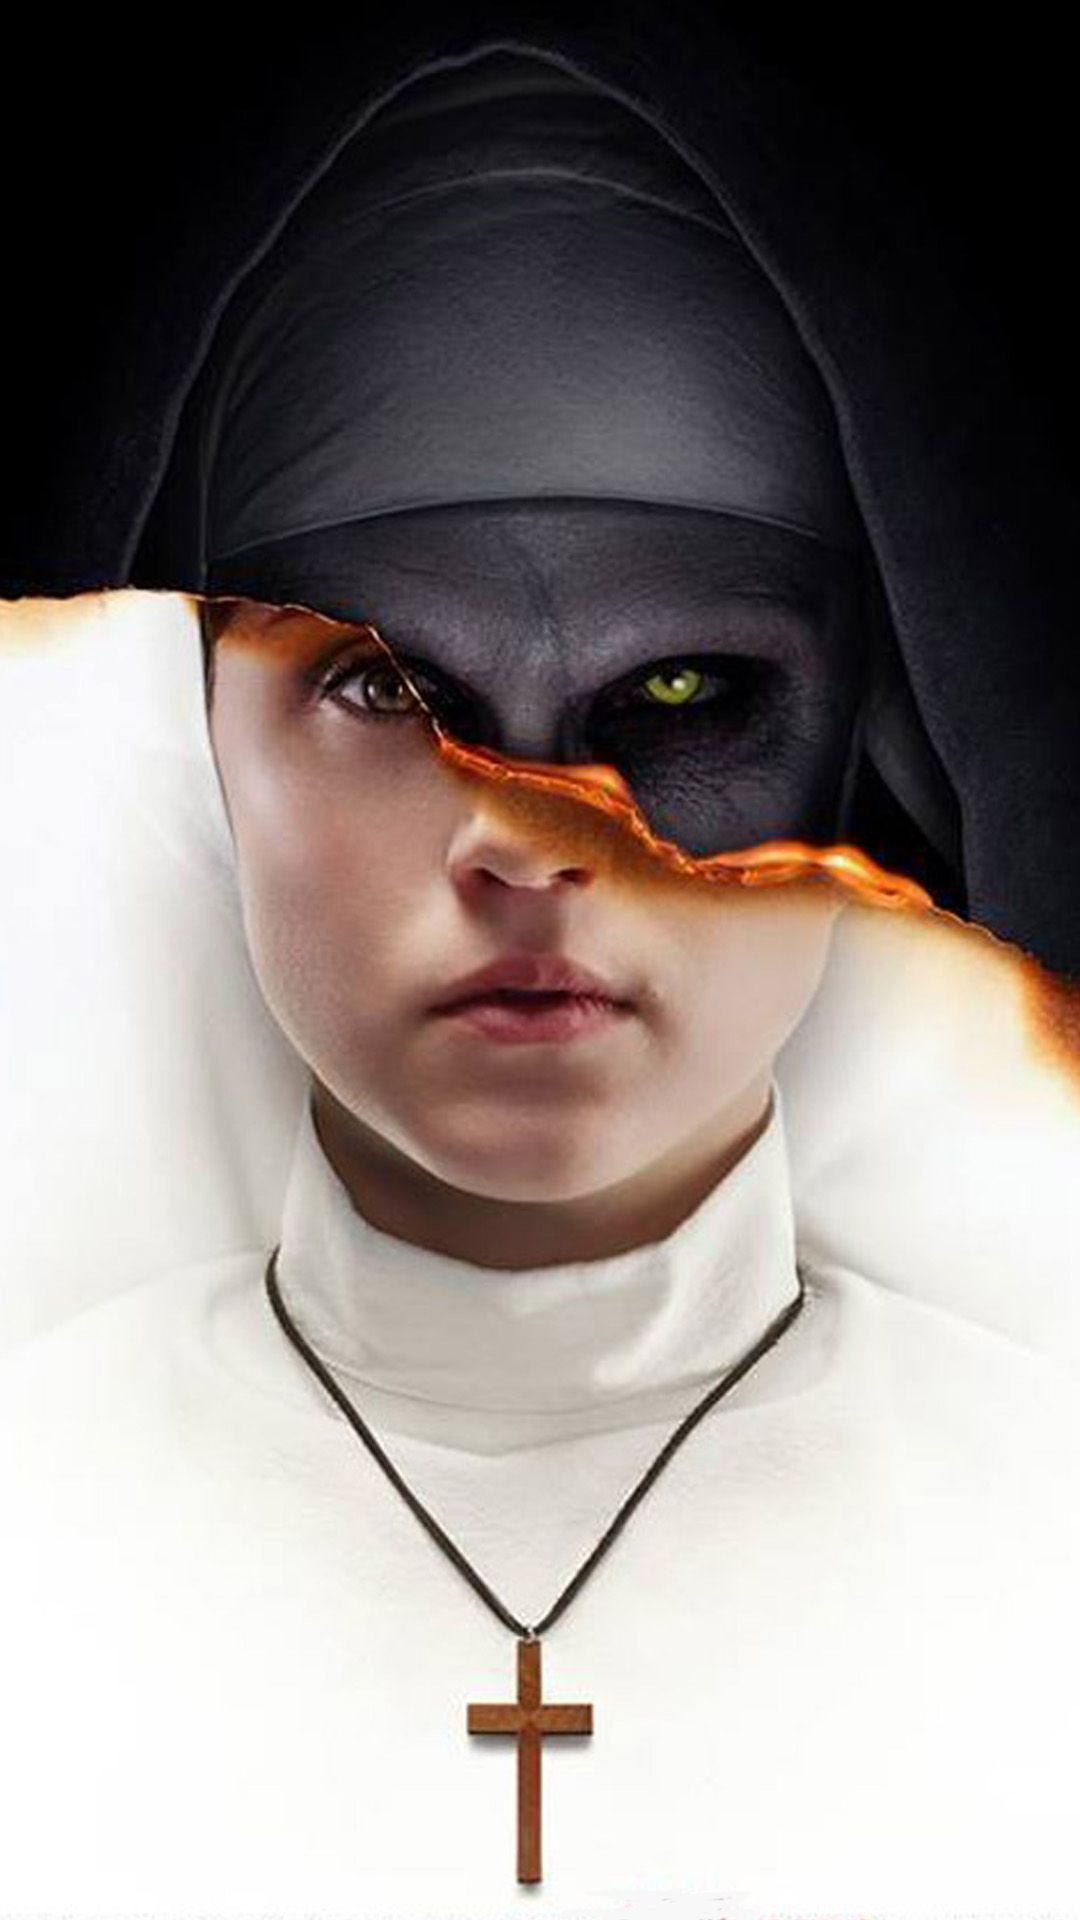 The Nun 2018 4k Ultra Hd Mobile Wallpaper Scary Wallpaper Horror Photos The Conjuring